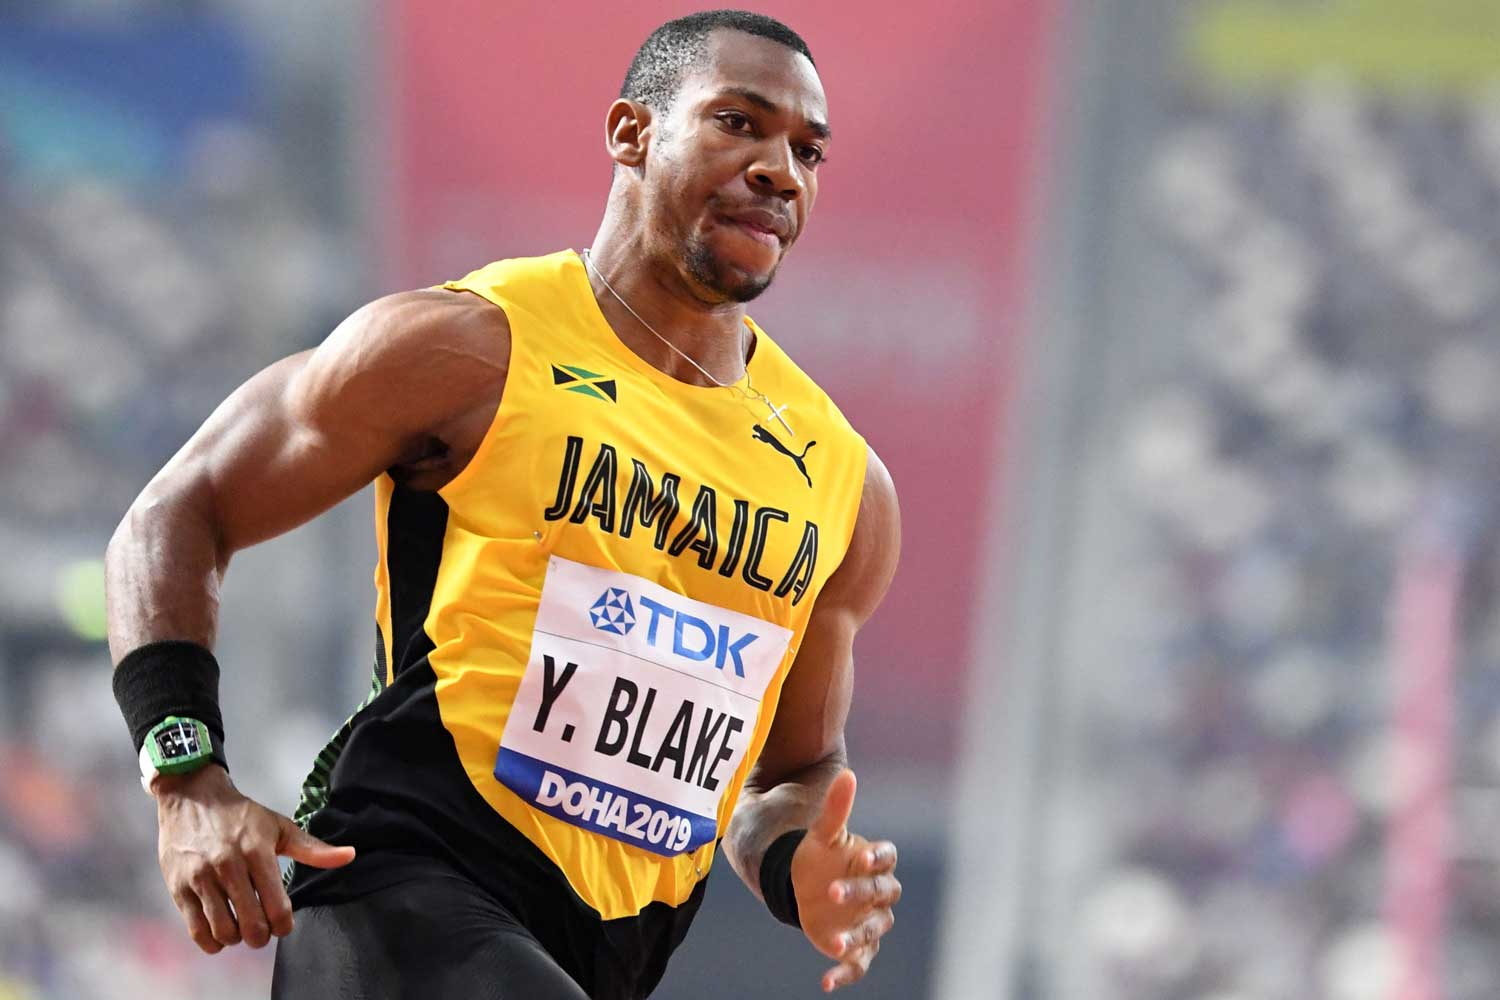 Jamaica's Yohan Blake competes in the Men's 100m heats at the 2019 IAAF World Athletics Championships at the Khalifa International stadium in Doha on September 27, 2019. (Photo by Jewel SAMAD / AFP) (Photo credit should read JEWEL SAMAD/AFP via Getty Images)